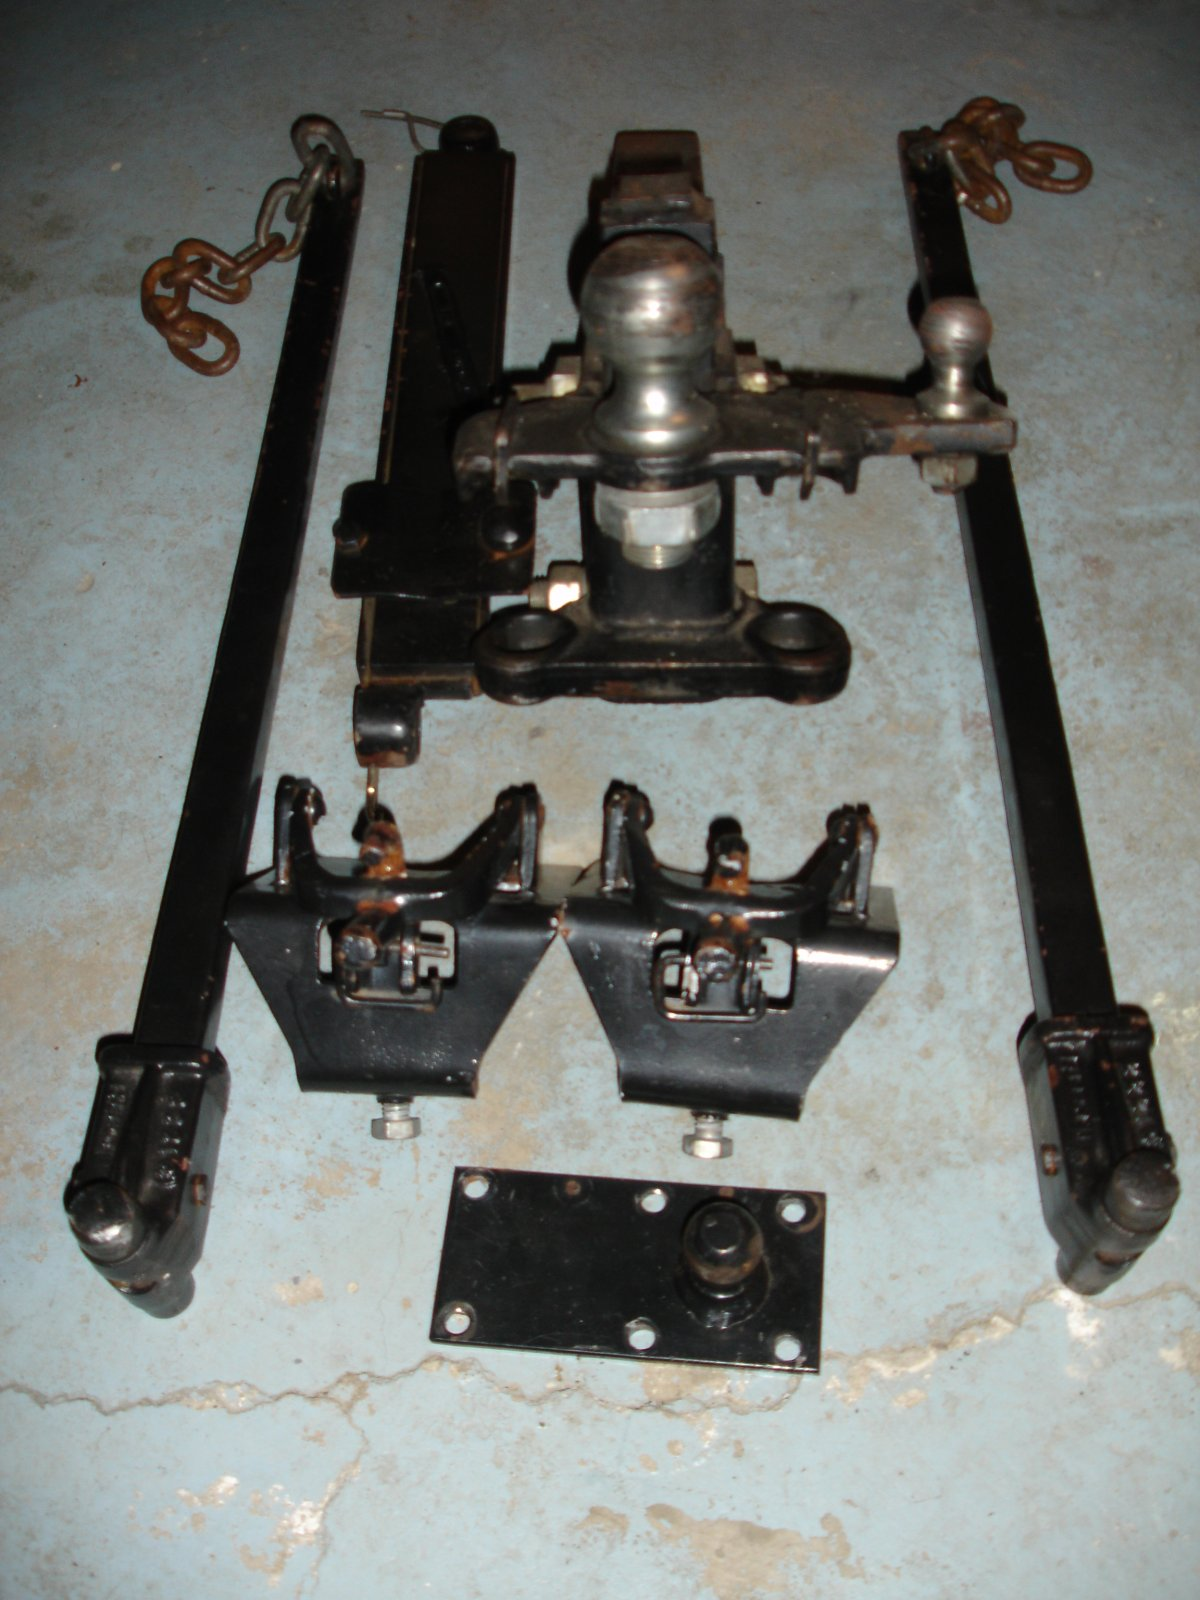 Click image for larger version  Name:63 Safari Hitch 001.jpg Views:70 Size:230.3 KB ID:73556